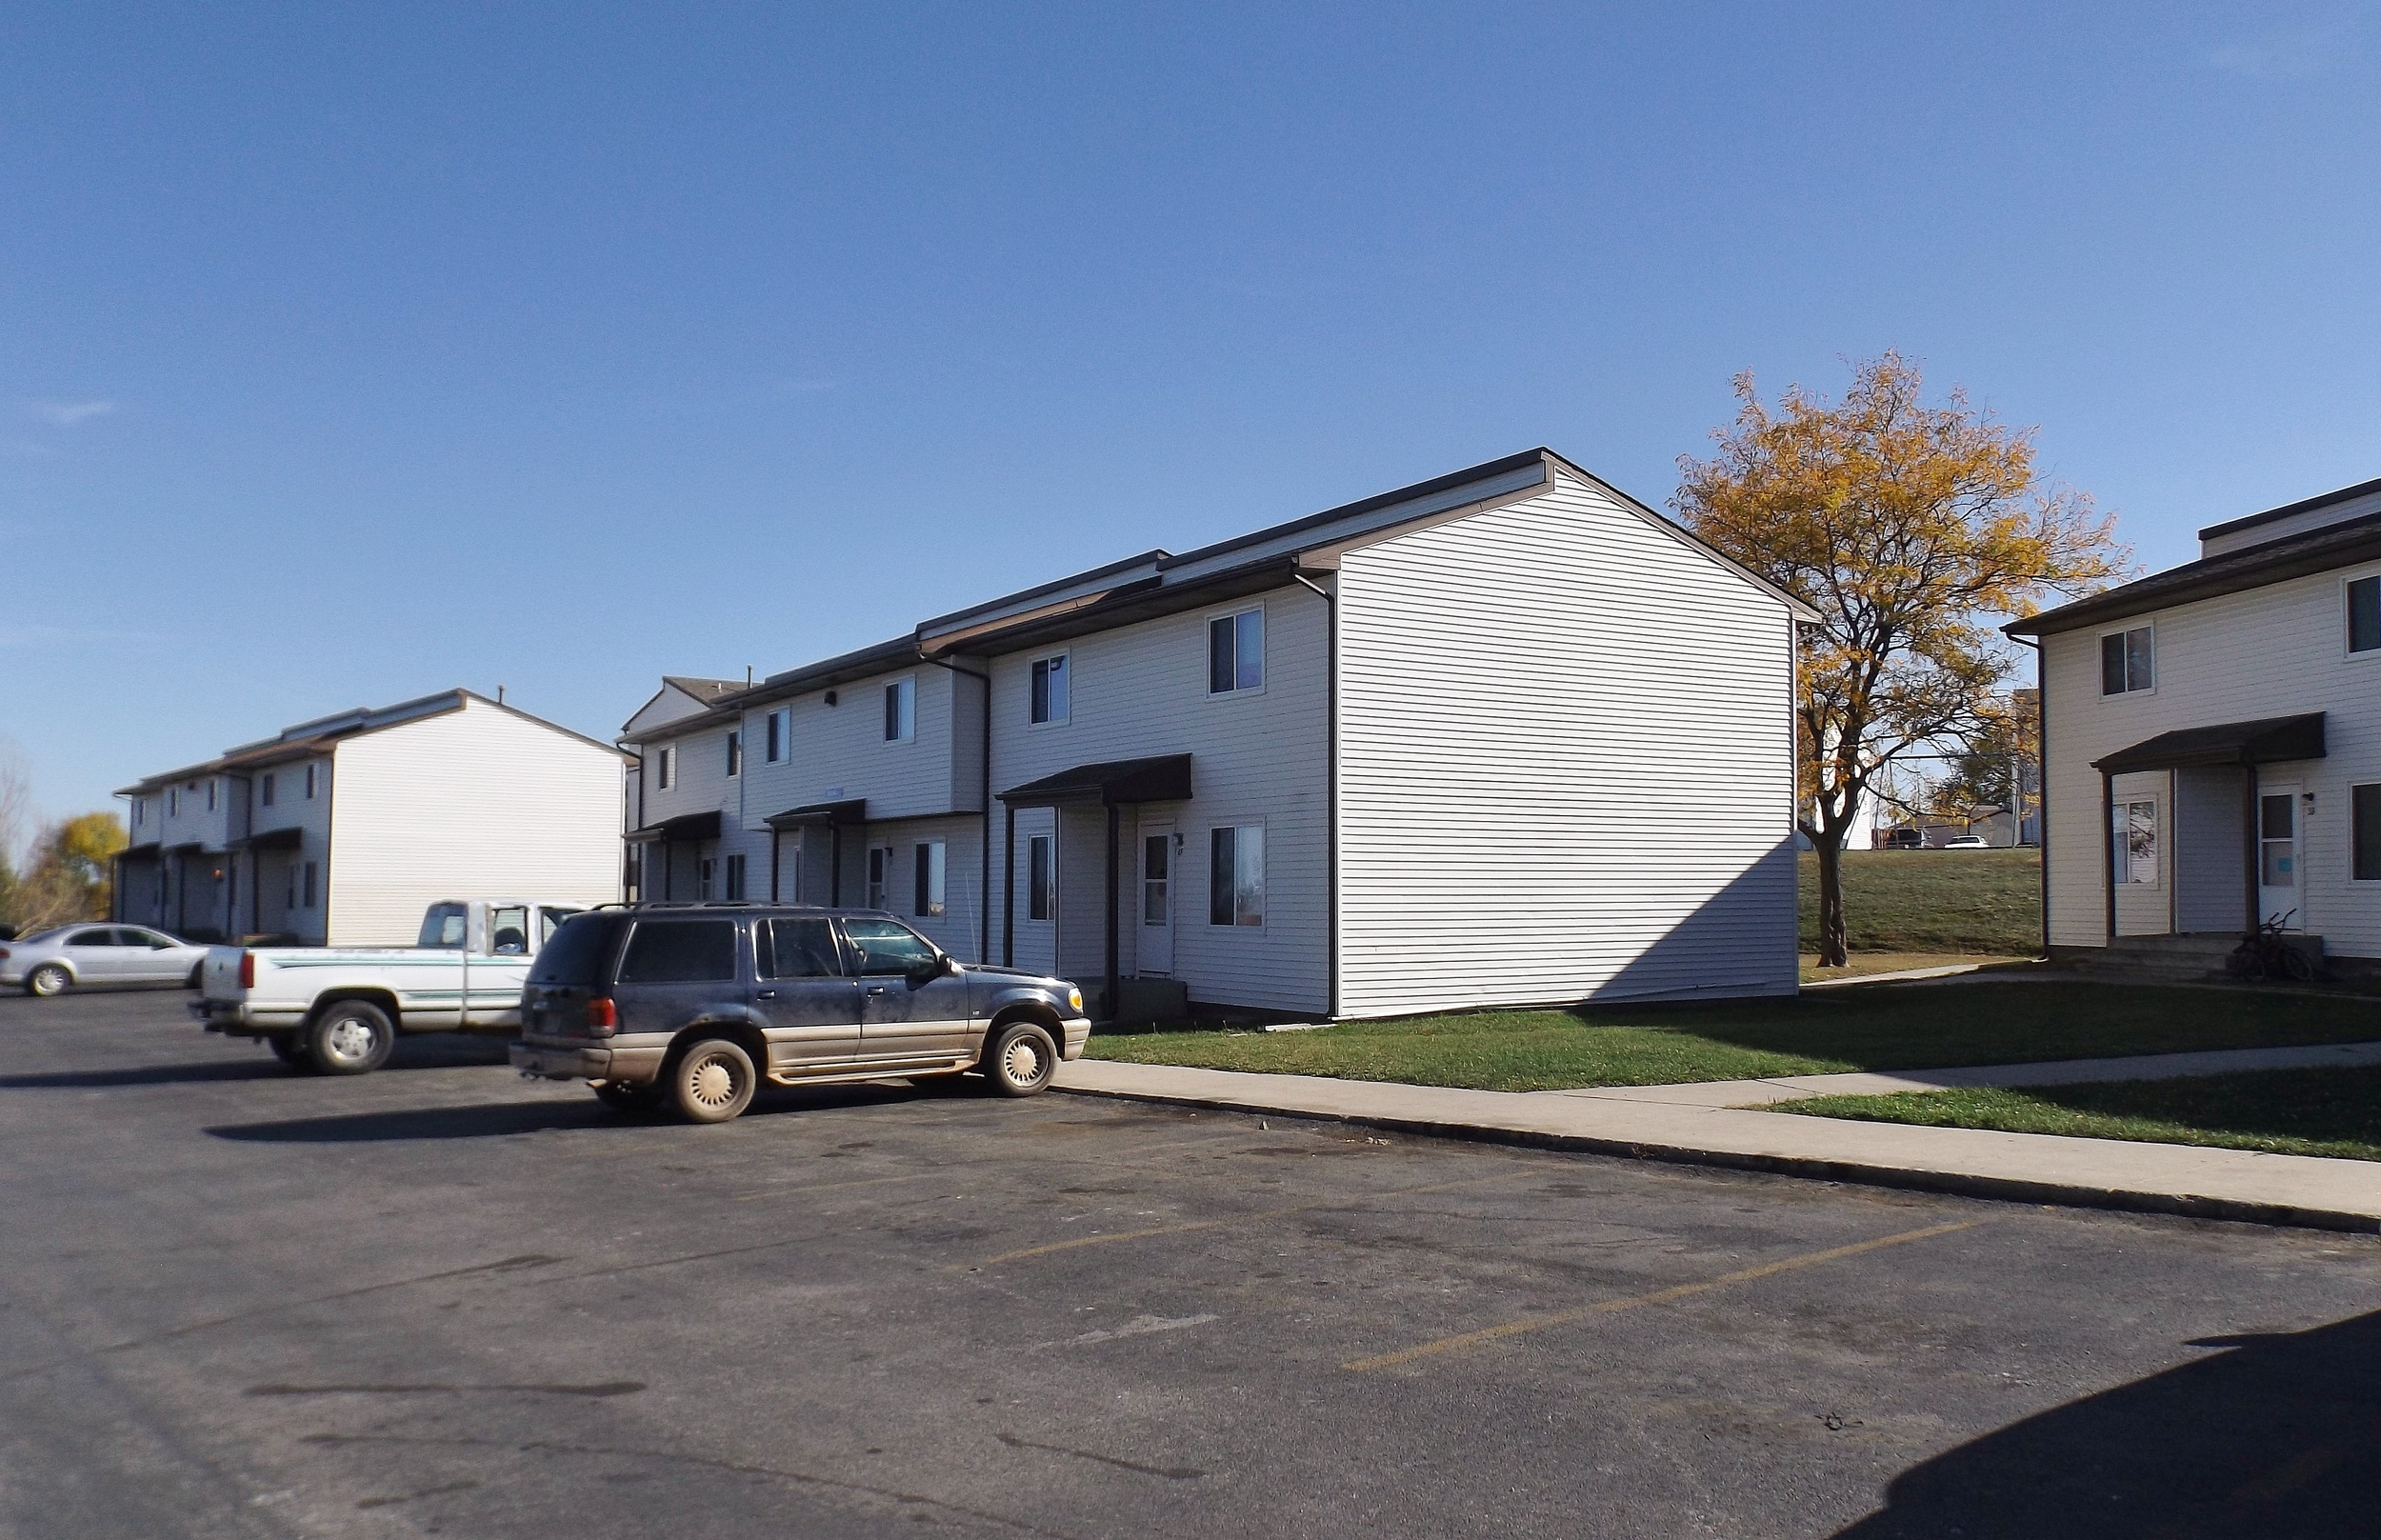 Pleasant Hill Village Apartment Rentals in Rapid City, SD - playground and coutyard